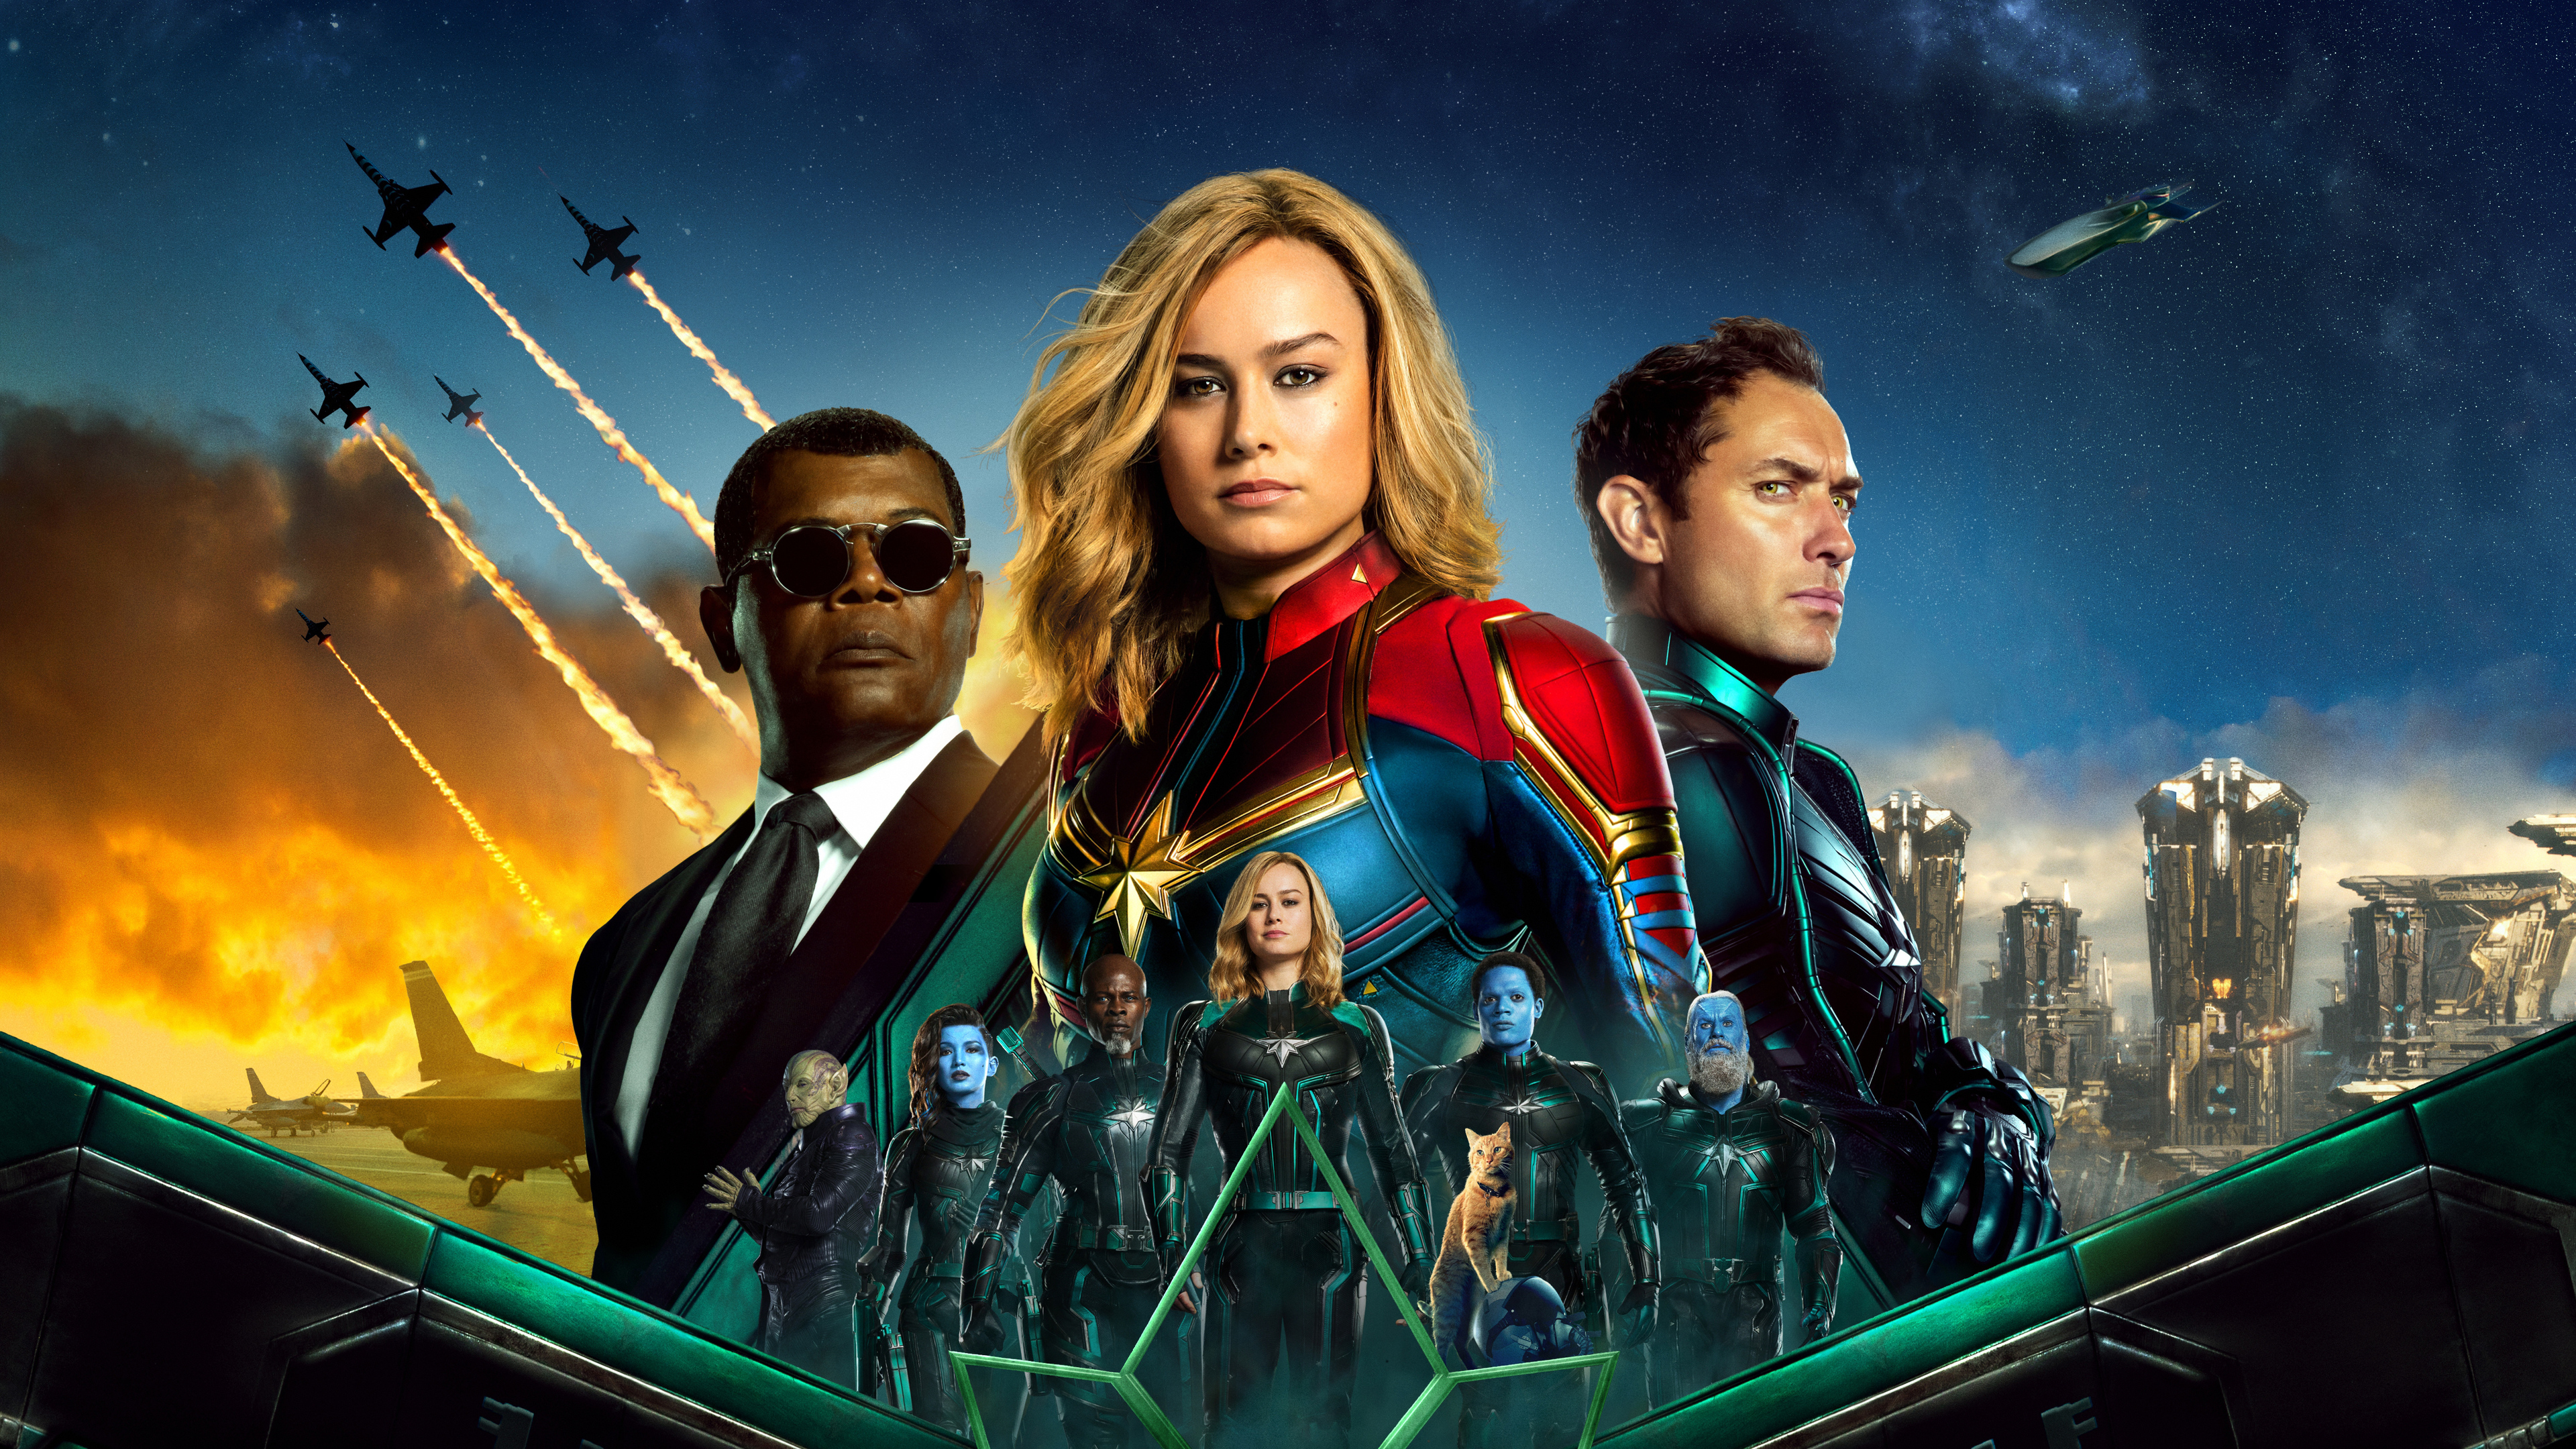 captain marvel movie poster 4k 1555208721 - Captain Marvel Movie Poster 4k - movies wallpapers, hd-wallpapers, captain marvel wallpapers, captain marvel movie wallpapers, brie larson wallpapers, 5k wallpapers, 4k-wallpapers, 2019 movies wallpapers